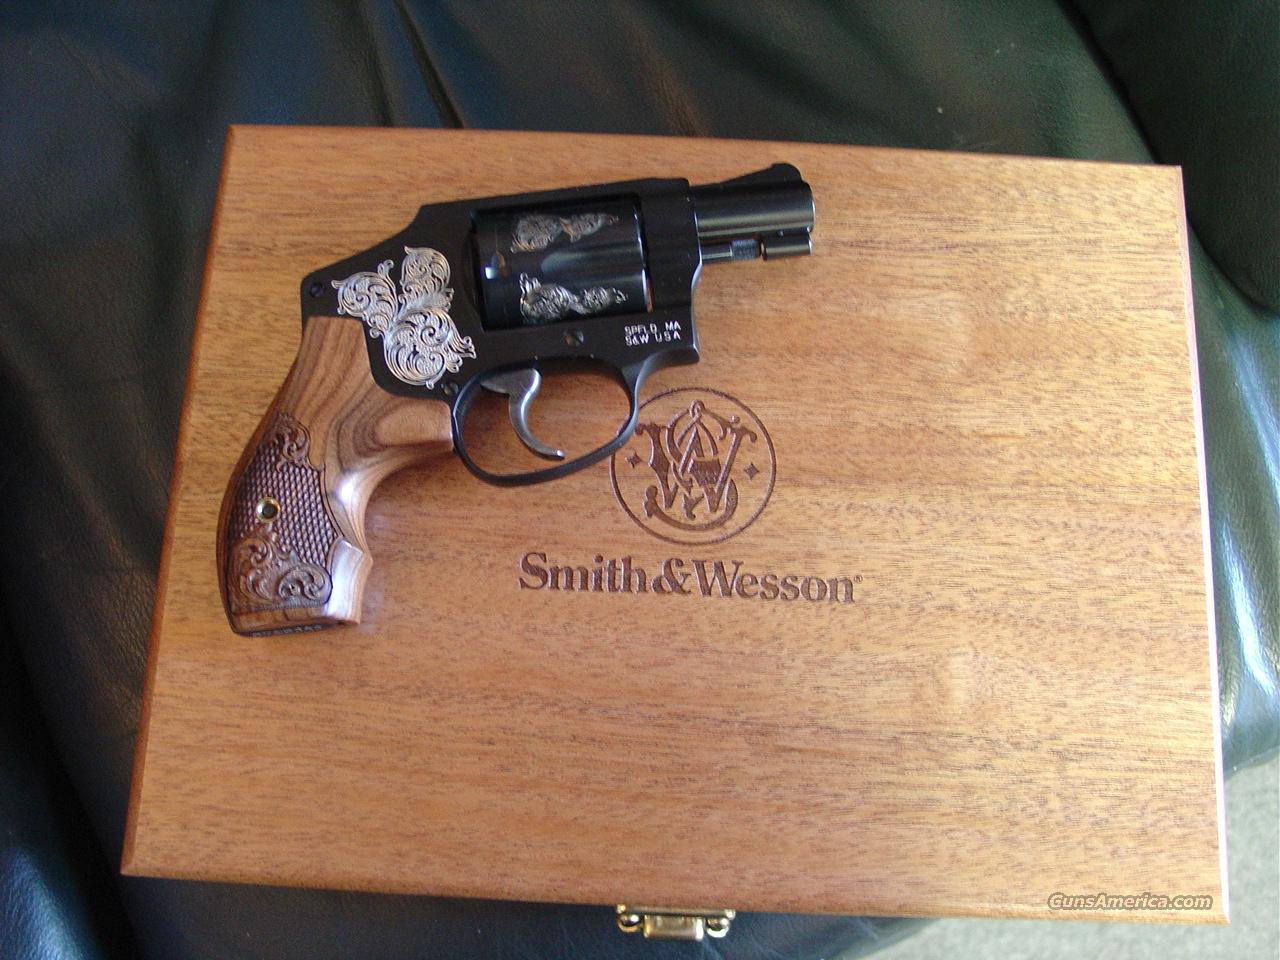 """Smith & Wesson Model 442,Limited Engraved edition,38 special +P,1.875"""" barrel,5 shots,wood pres.case,S&W carry case all papers,lock,test round,NIB,made in 2014 !!  Guns > Pistols > Smith & Wesson Revolvers > Pocket Pistols"""